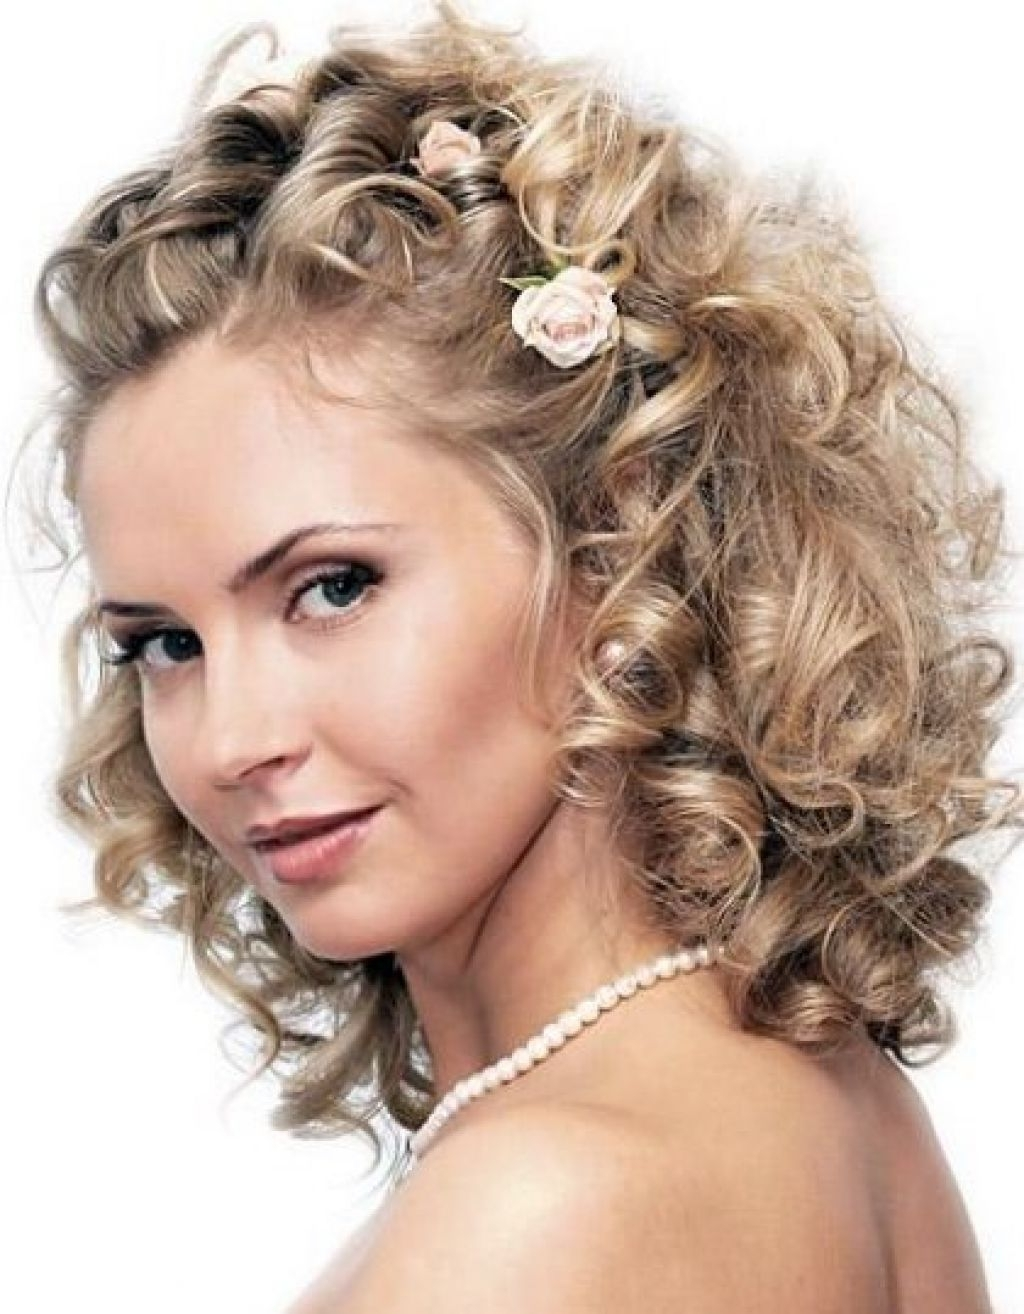 Pin On Hair Styles 10+ Amazing Medium Length Curly Wedding Hairstyles